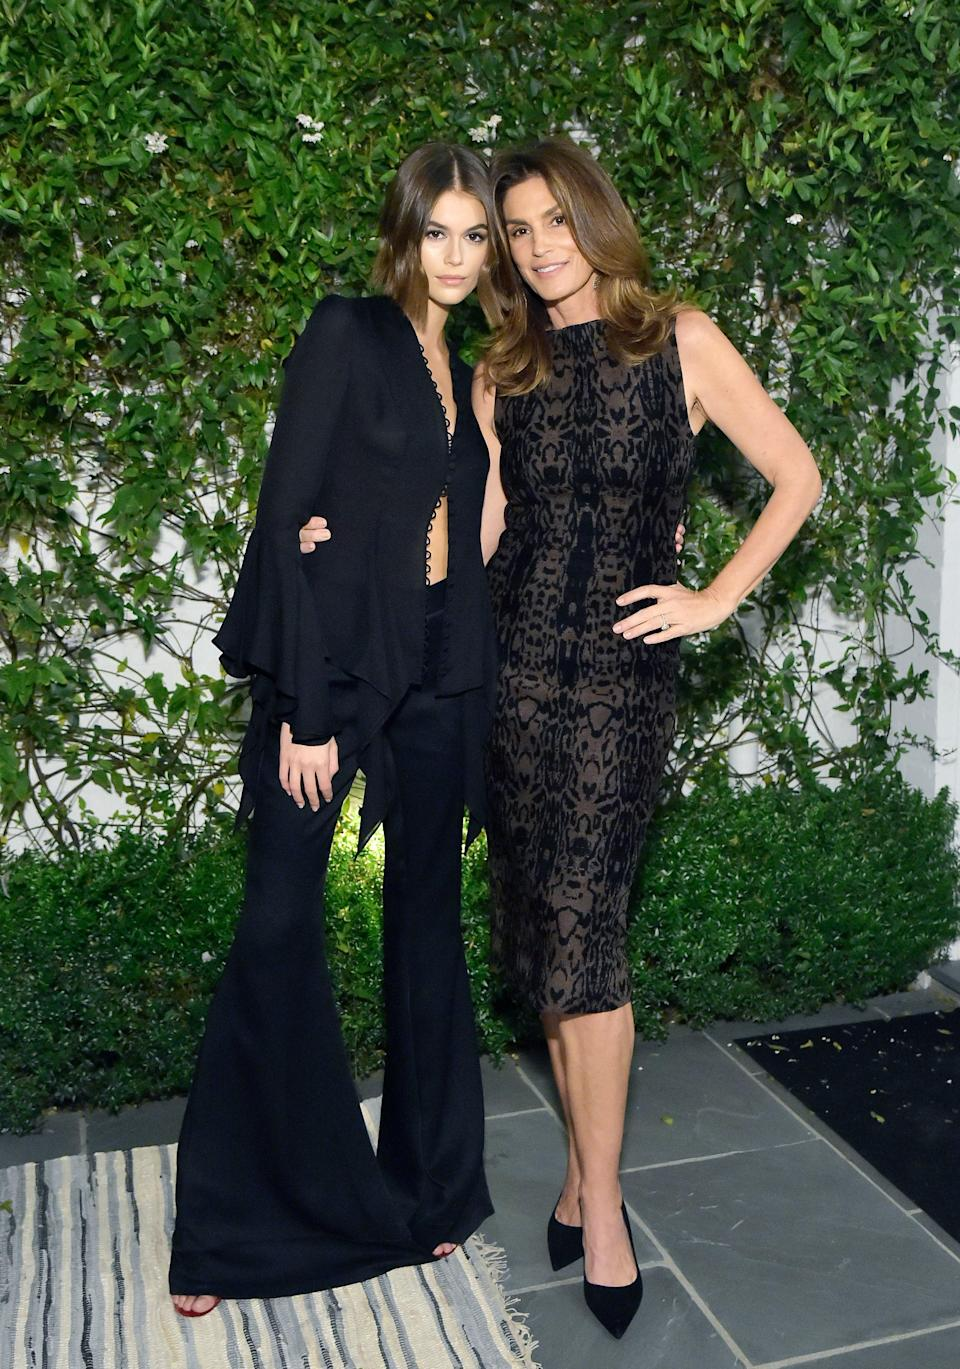 Without the jacket, the look gets instantly elevated. Here she is pictured with fellow supermodel and mom Cindy Crawford.